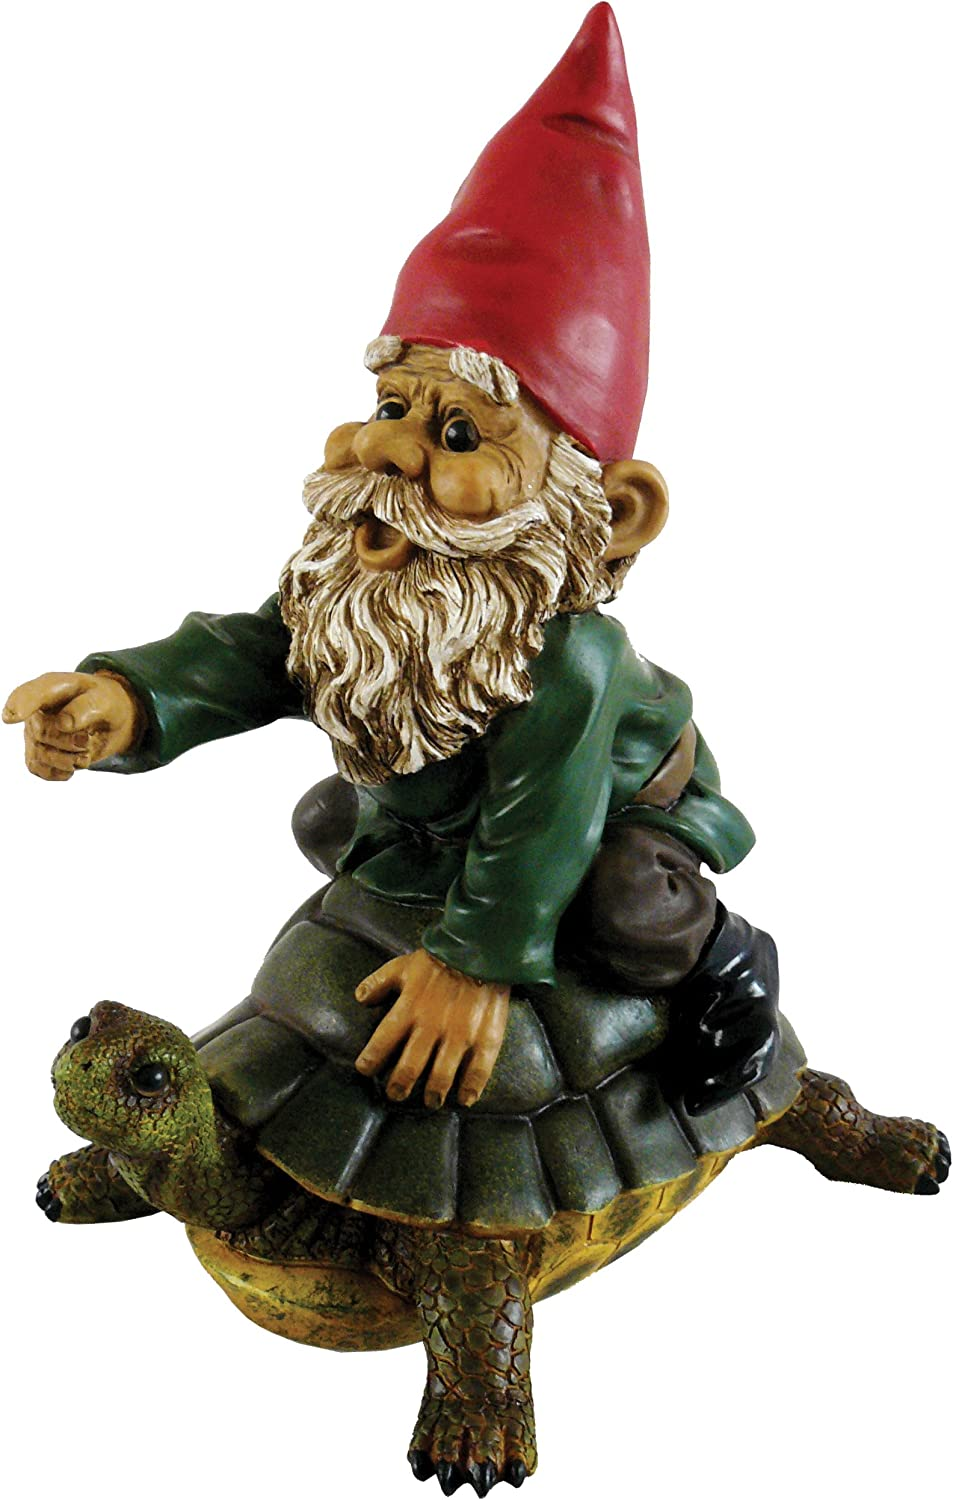 Garrold Gnome on a Turtle by Michael Carr Designs - Outdoor Gnome and Turtle Figurine for gardens, patios and lawns (80036)